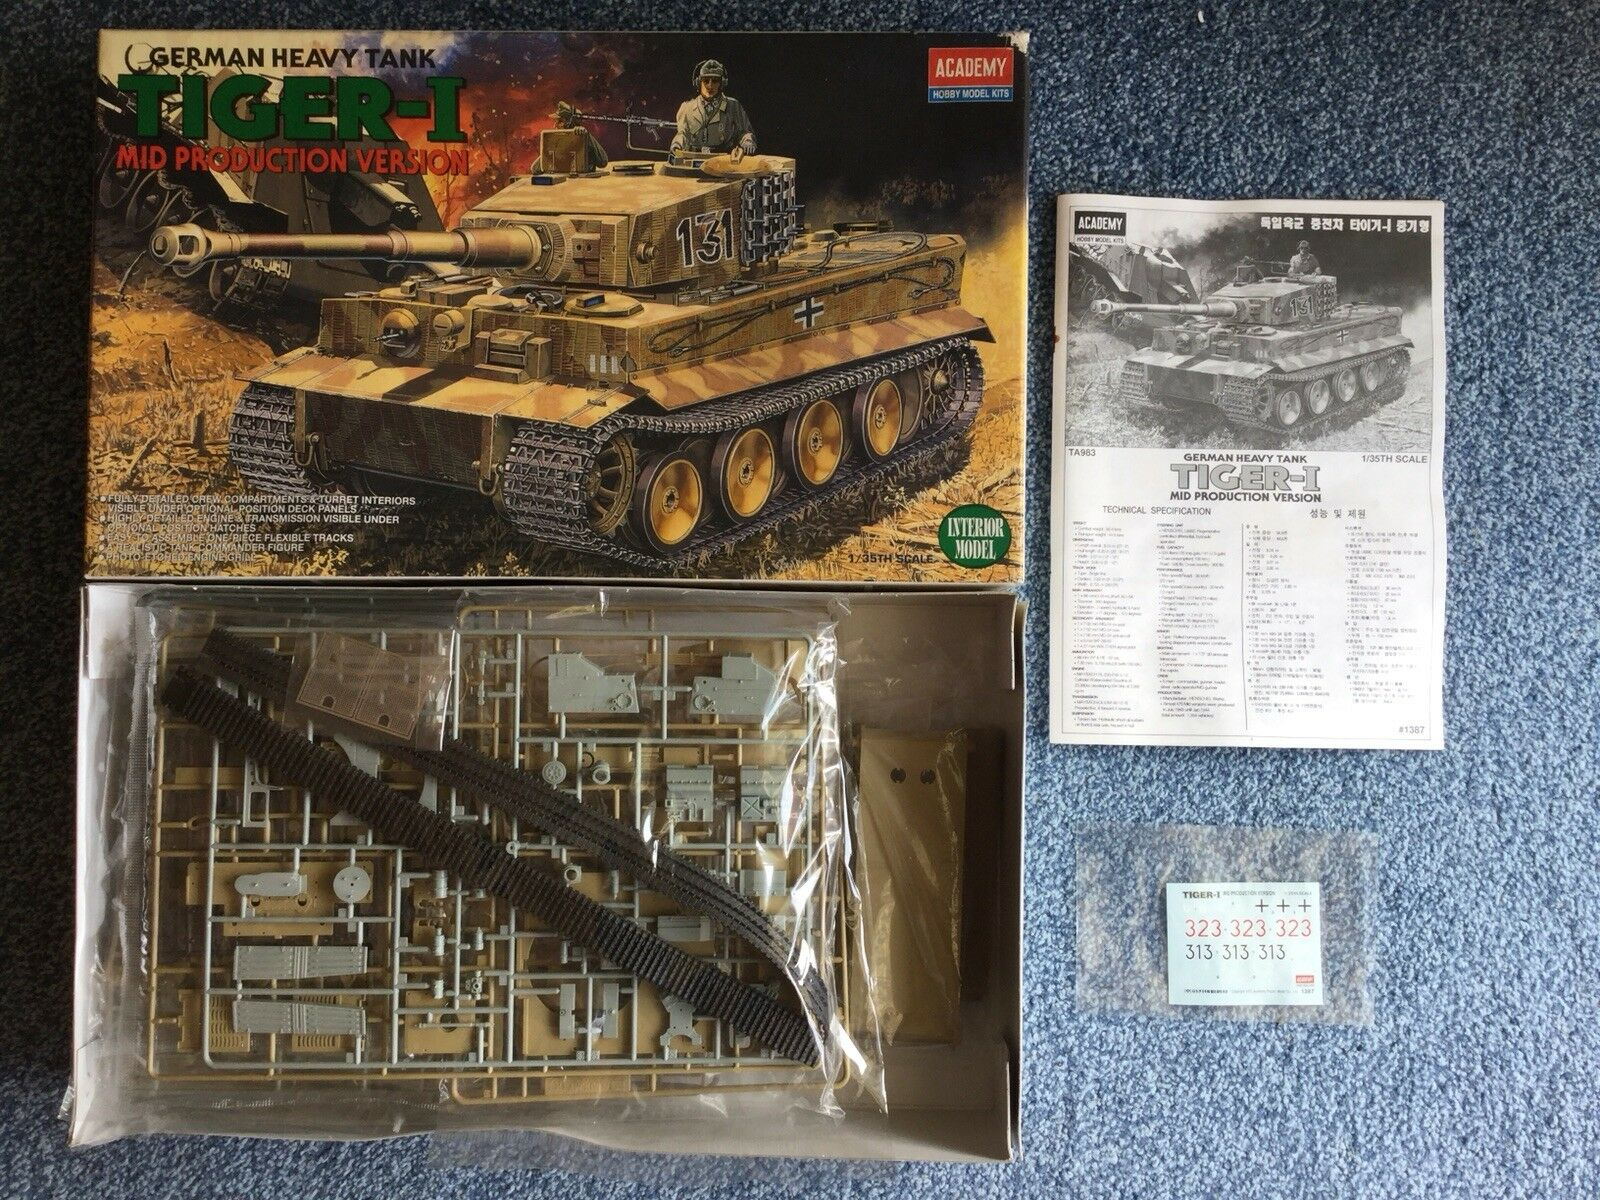 Academy 1 35 Tiger I Mid Production with Interior plastic model kit